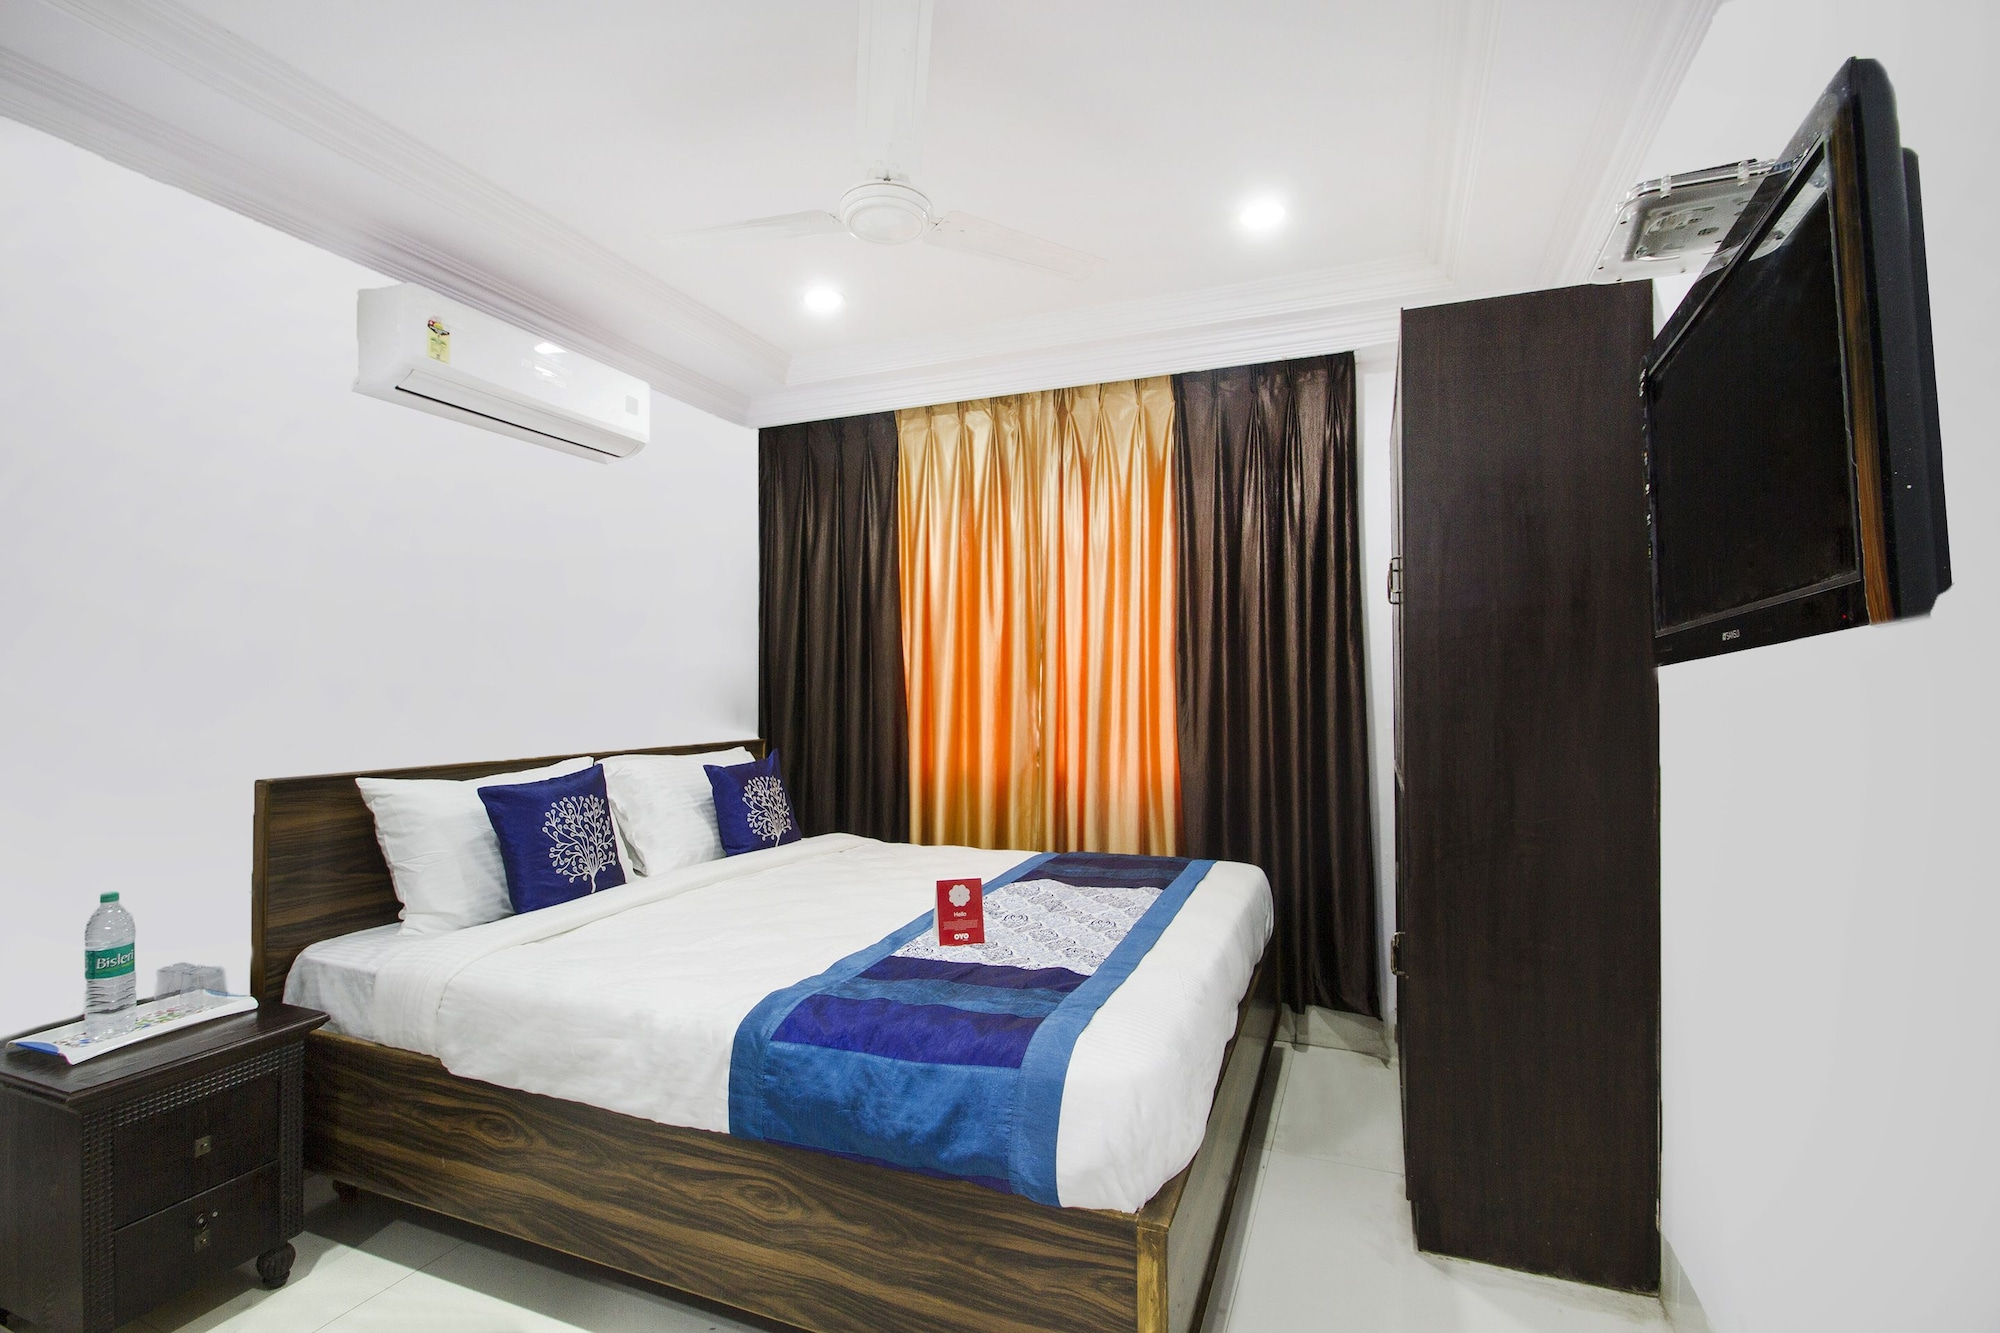 Hotel Srinivasa Central, Hyderabad